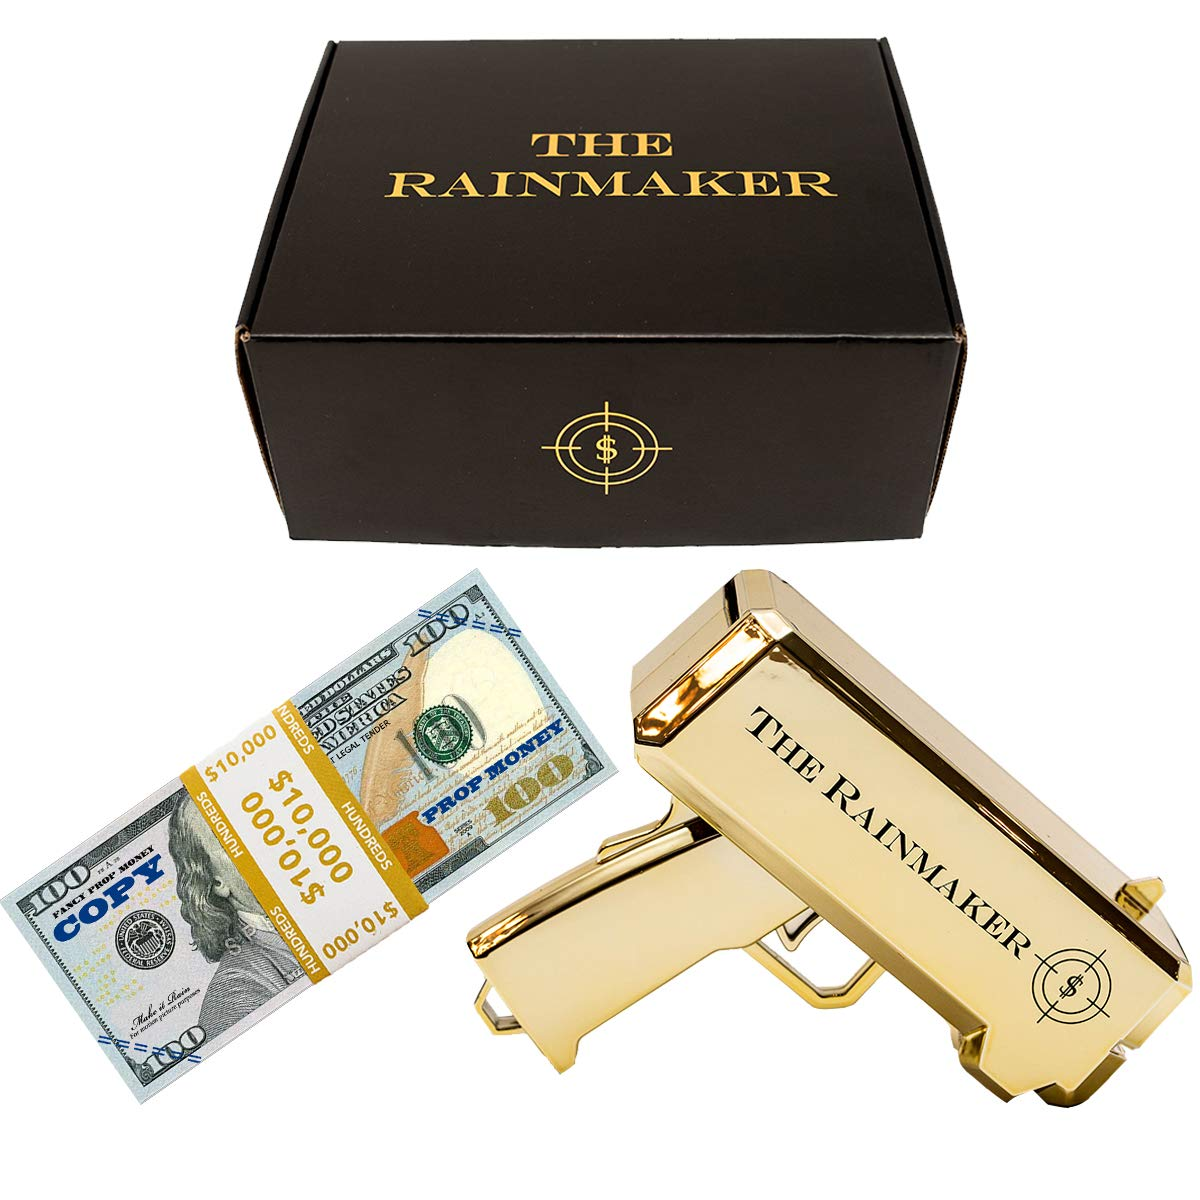 All Out Solutions The Rainmaker Money Gun | $10,000 Prop/Copy Money | Replica Money Looks Real! | Metallic Gold | Impress Your Friends with This Fun Party Toy | Shoot Cash and Make It Rain by All Out Solutions